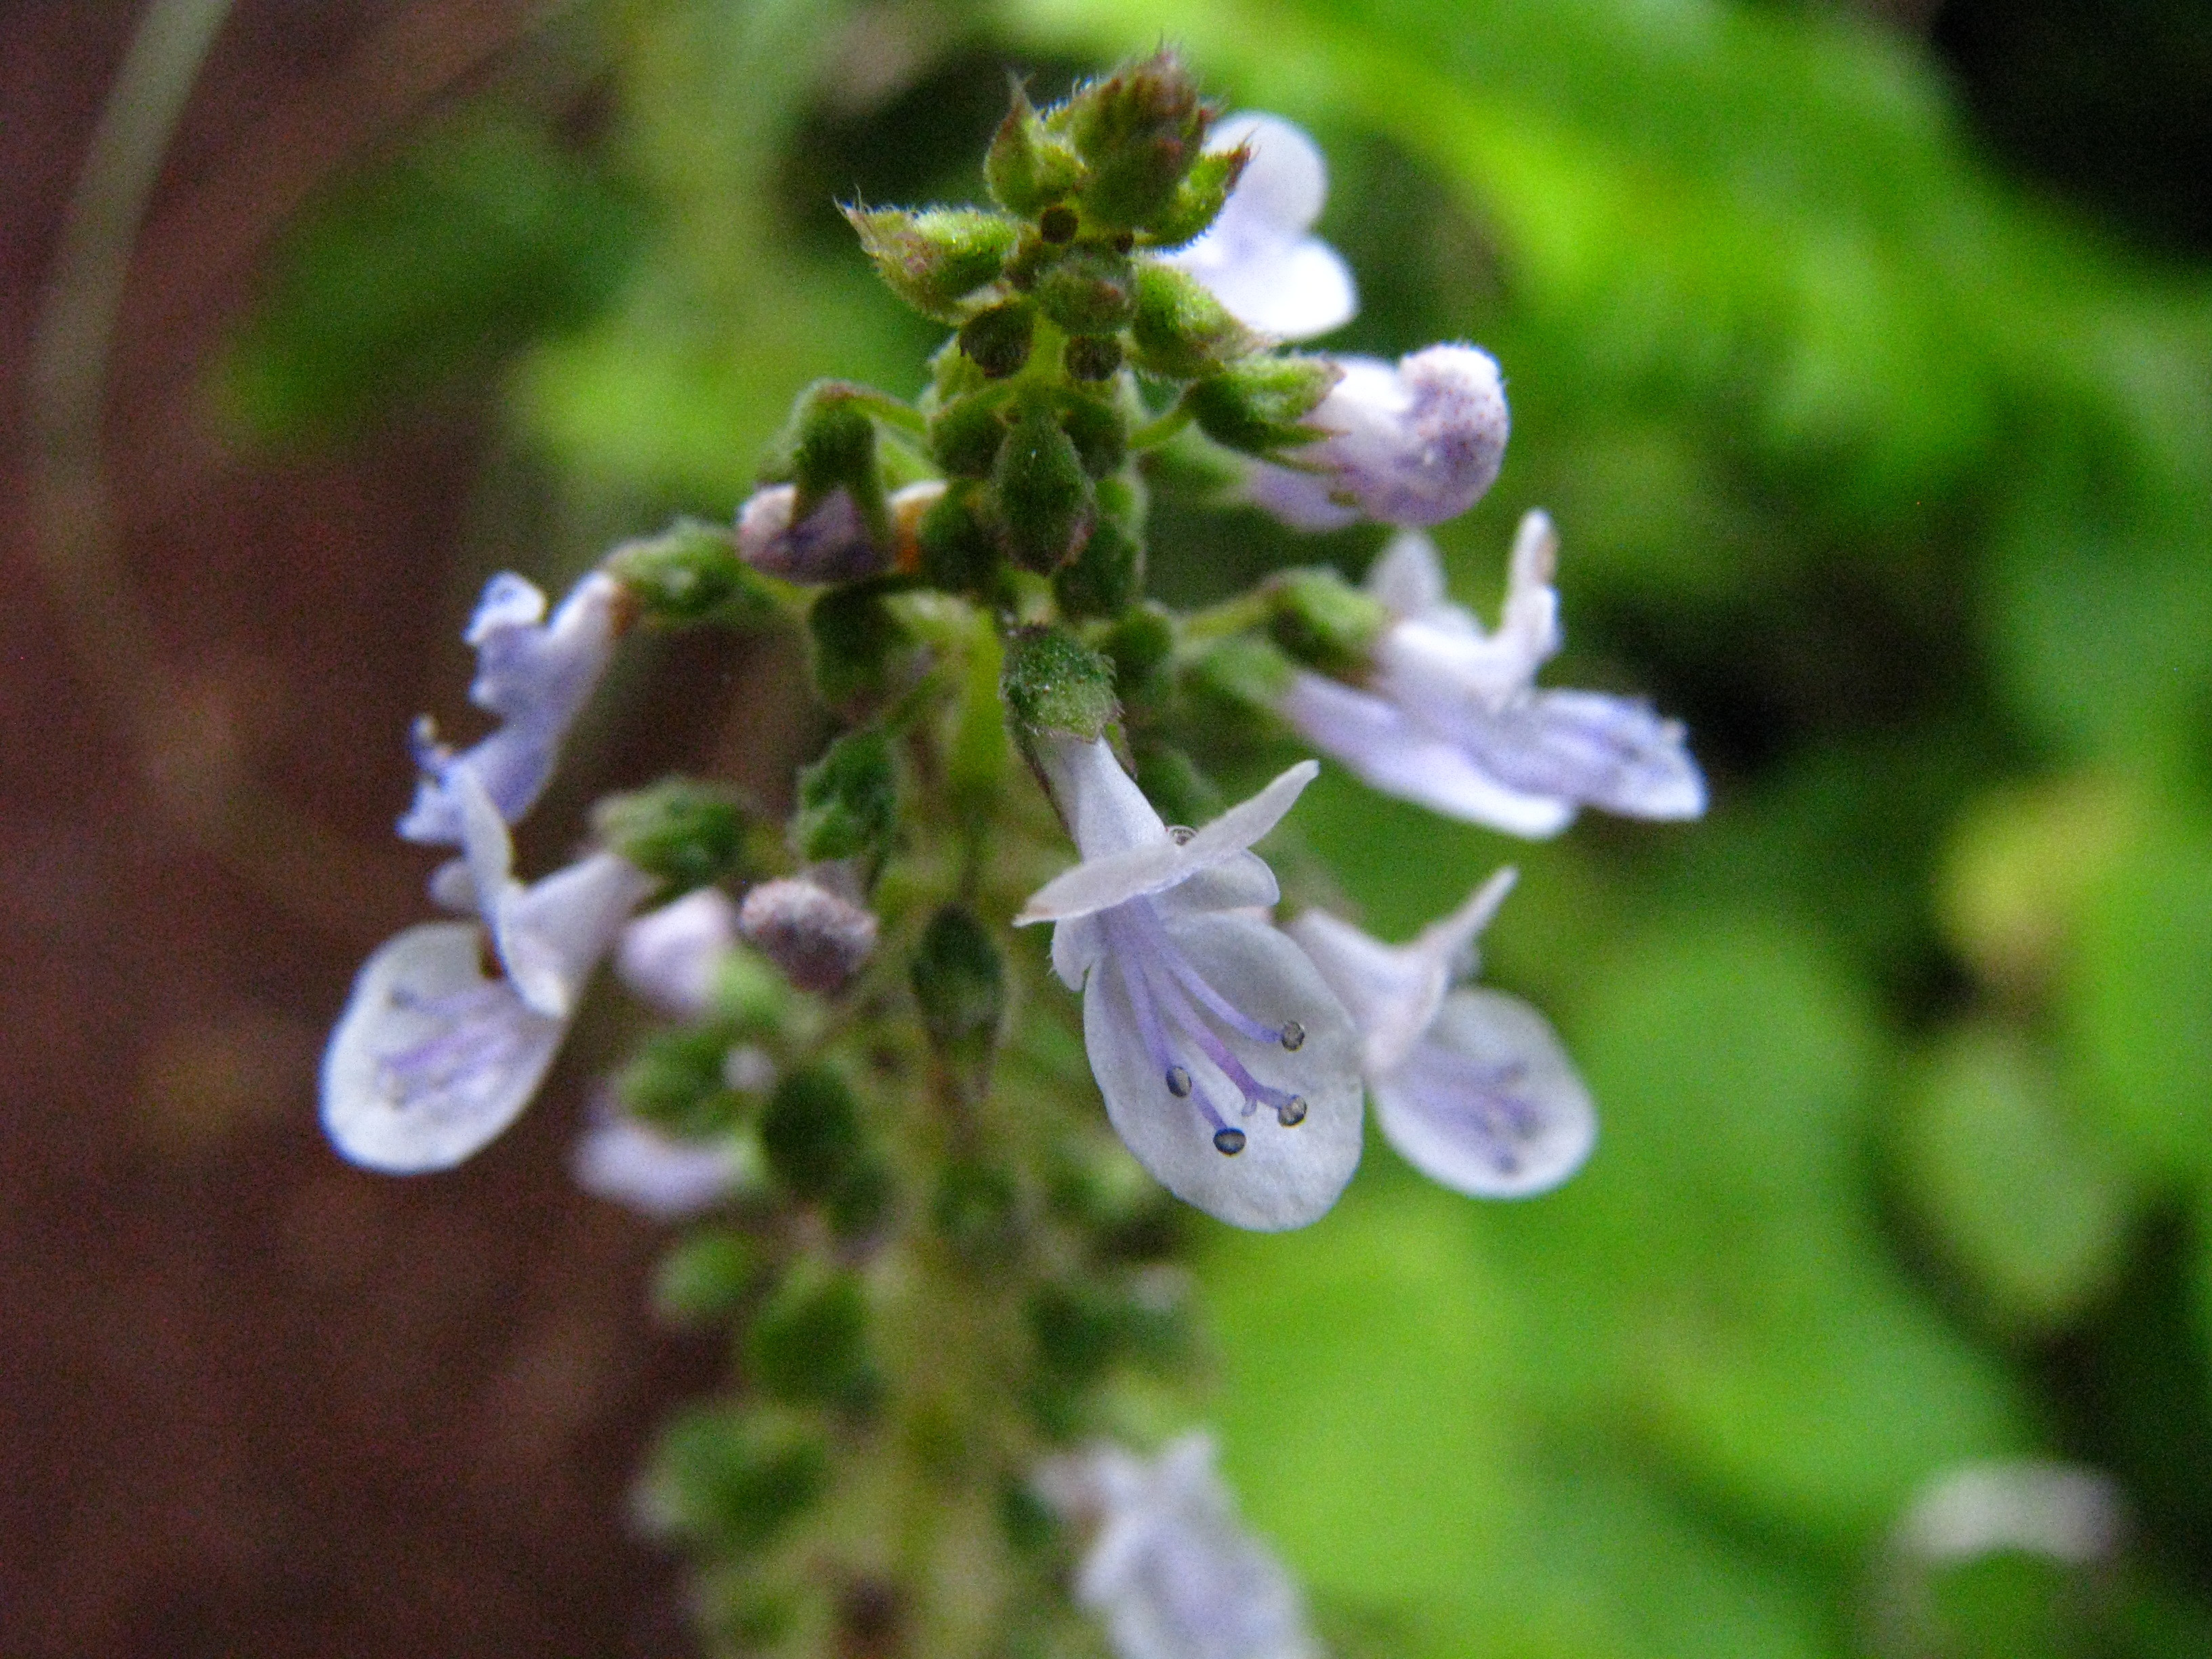 Image of little spurflower